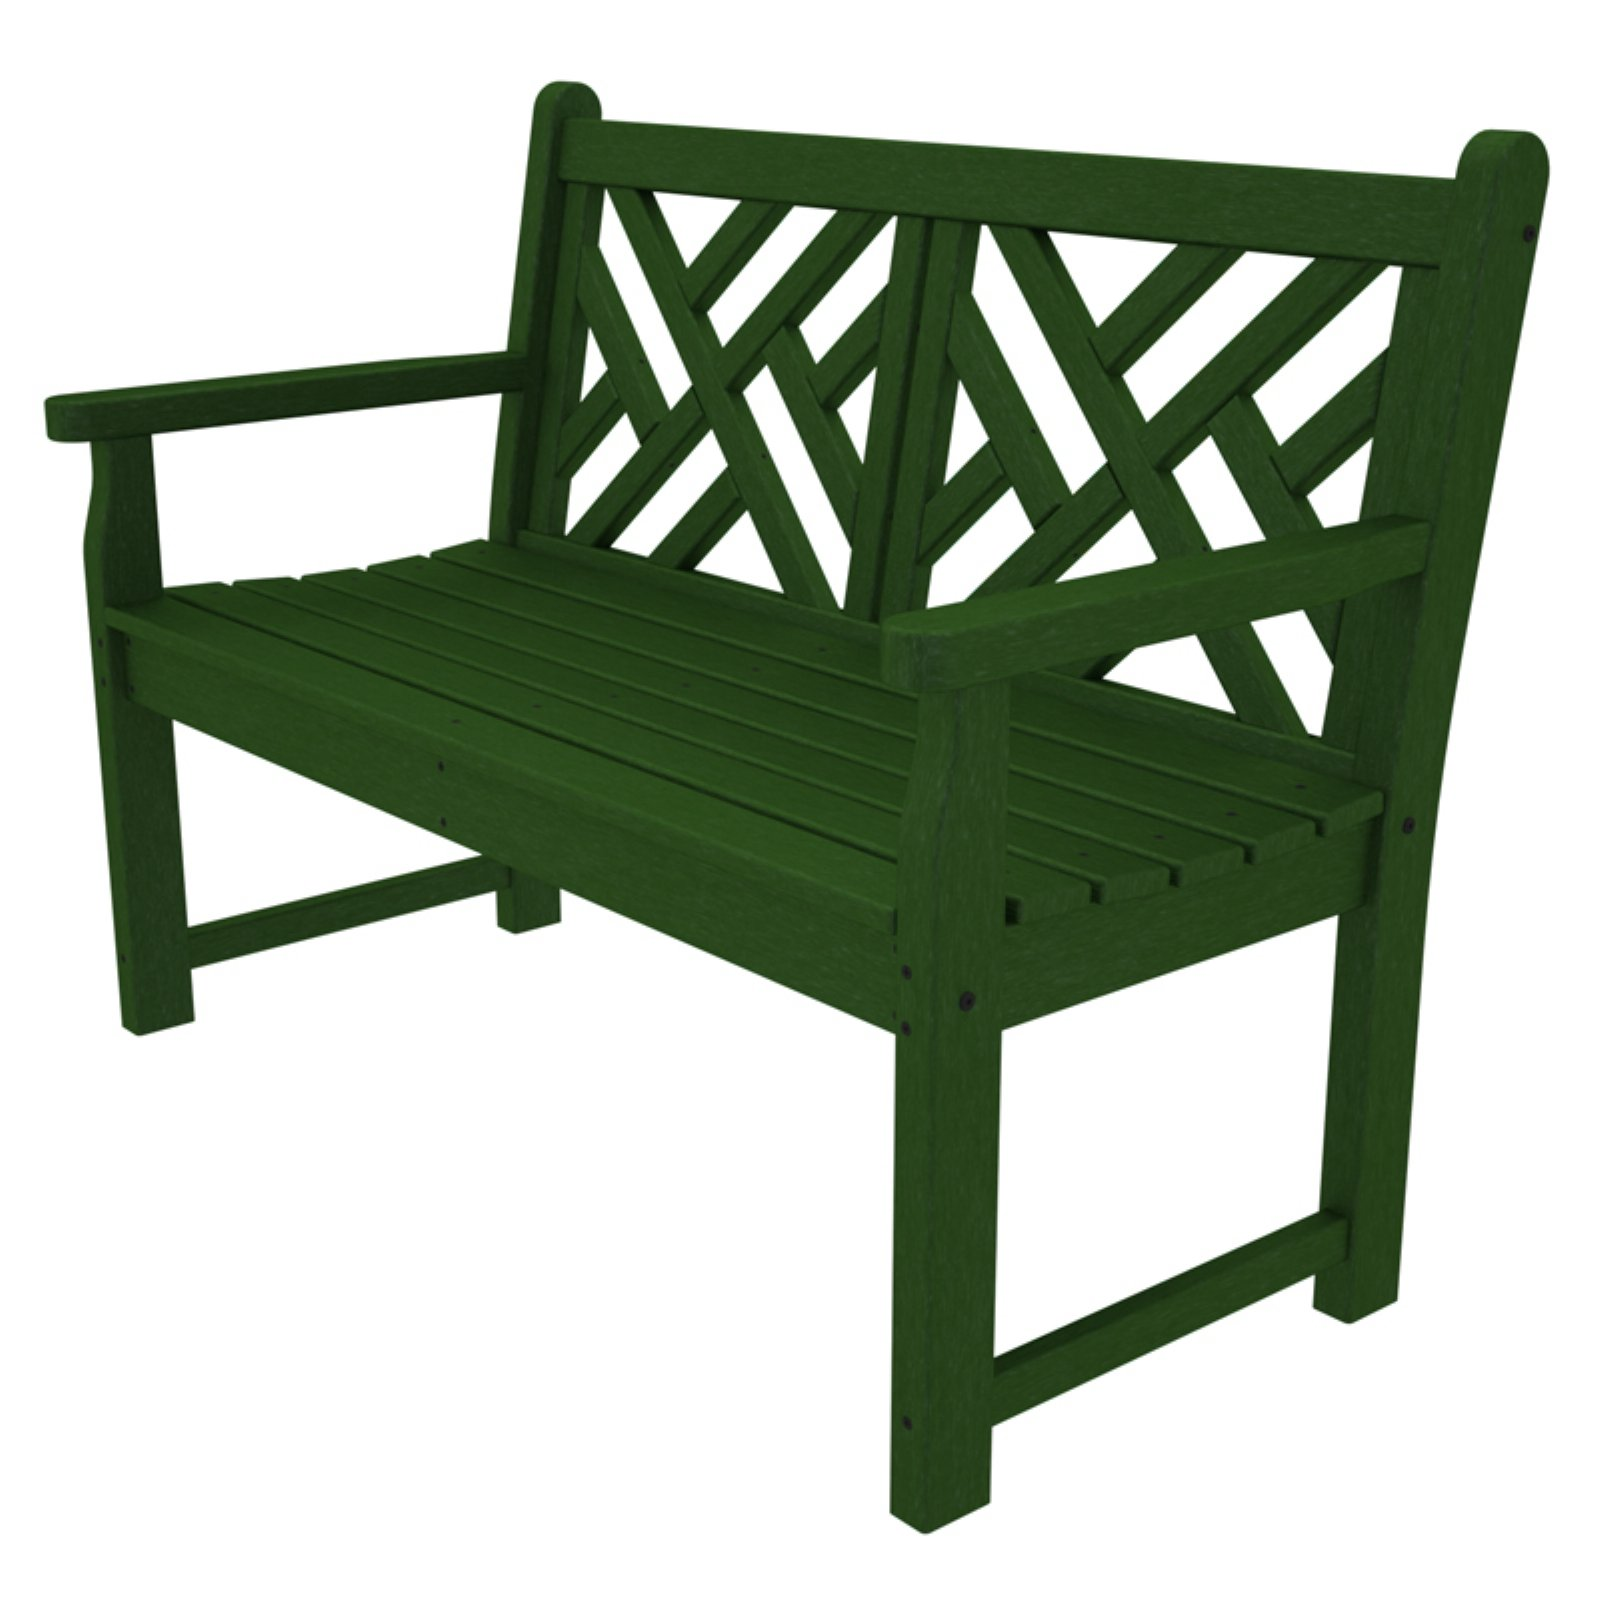 Astounding Polywood Chippendale Style Outdoor Bench Pabps2019 Chair Design Images Pabps2019Com